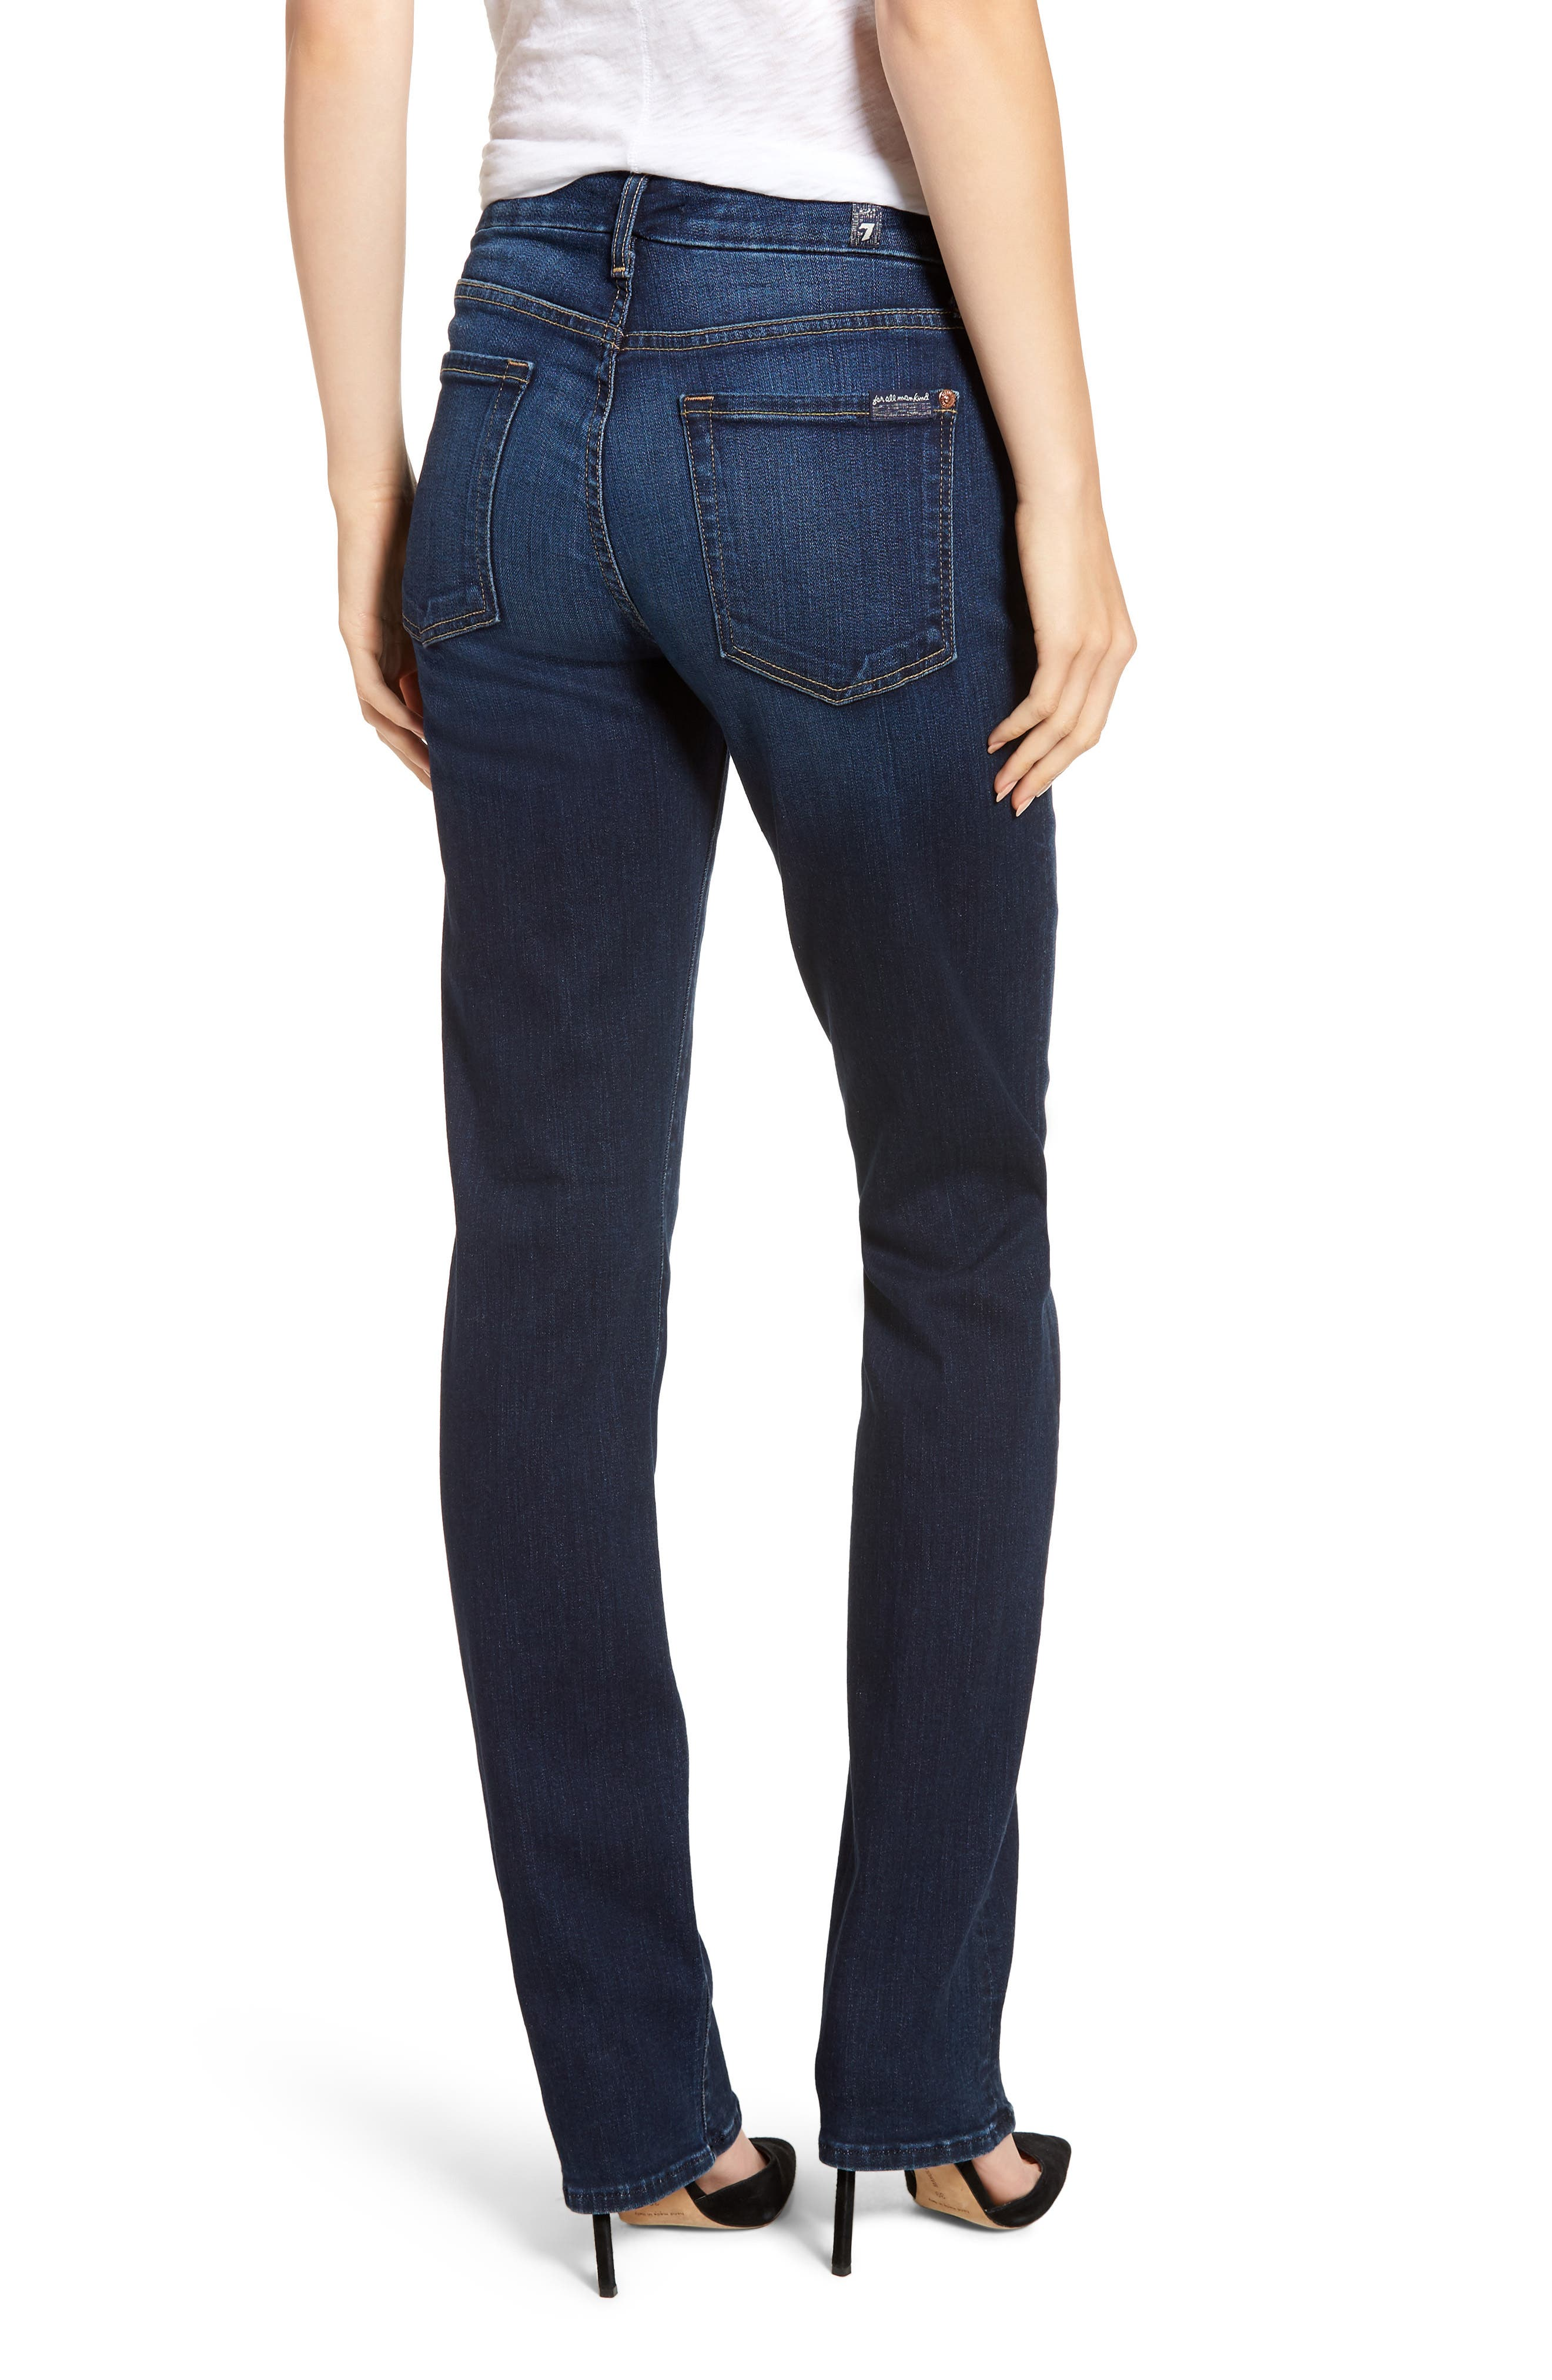 7 FOR ALL MANKIND<SUP>®</SUP>, b(air) Kimmie Straight Leg Jeans, Alternate thumbnail 2, color, AUTHENTIC FATE